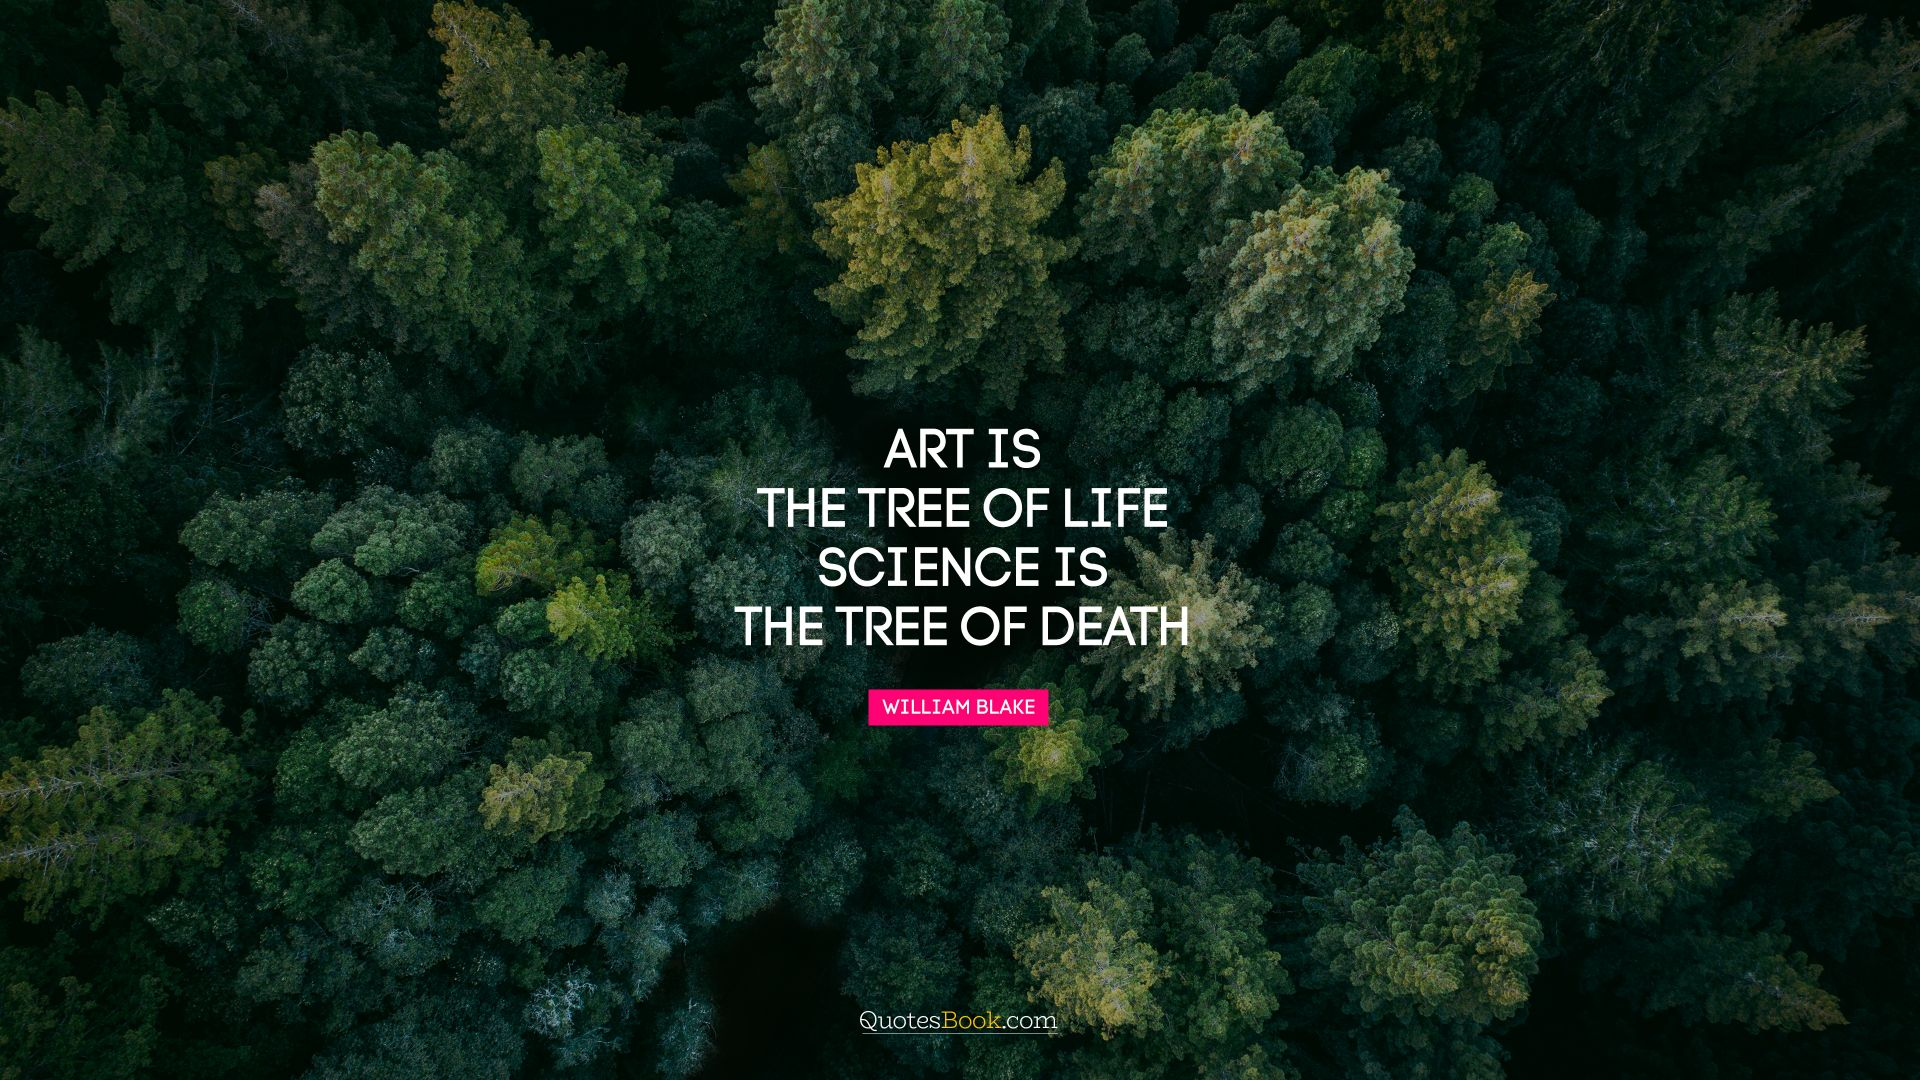 Art is the tree of life. Science is the tree of death. - Quote by William Blake